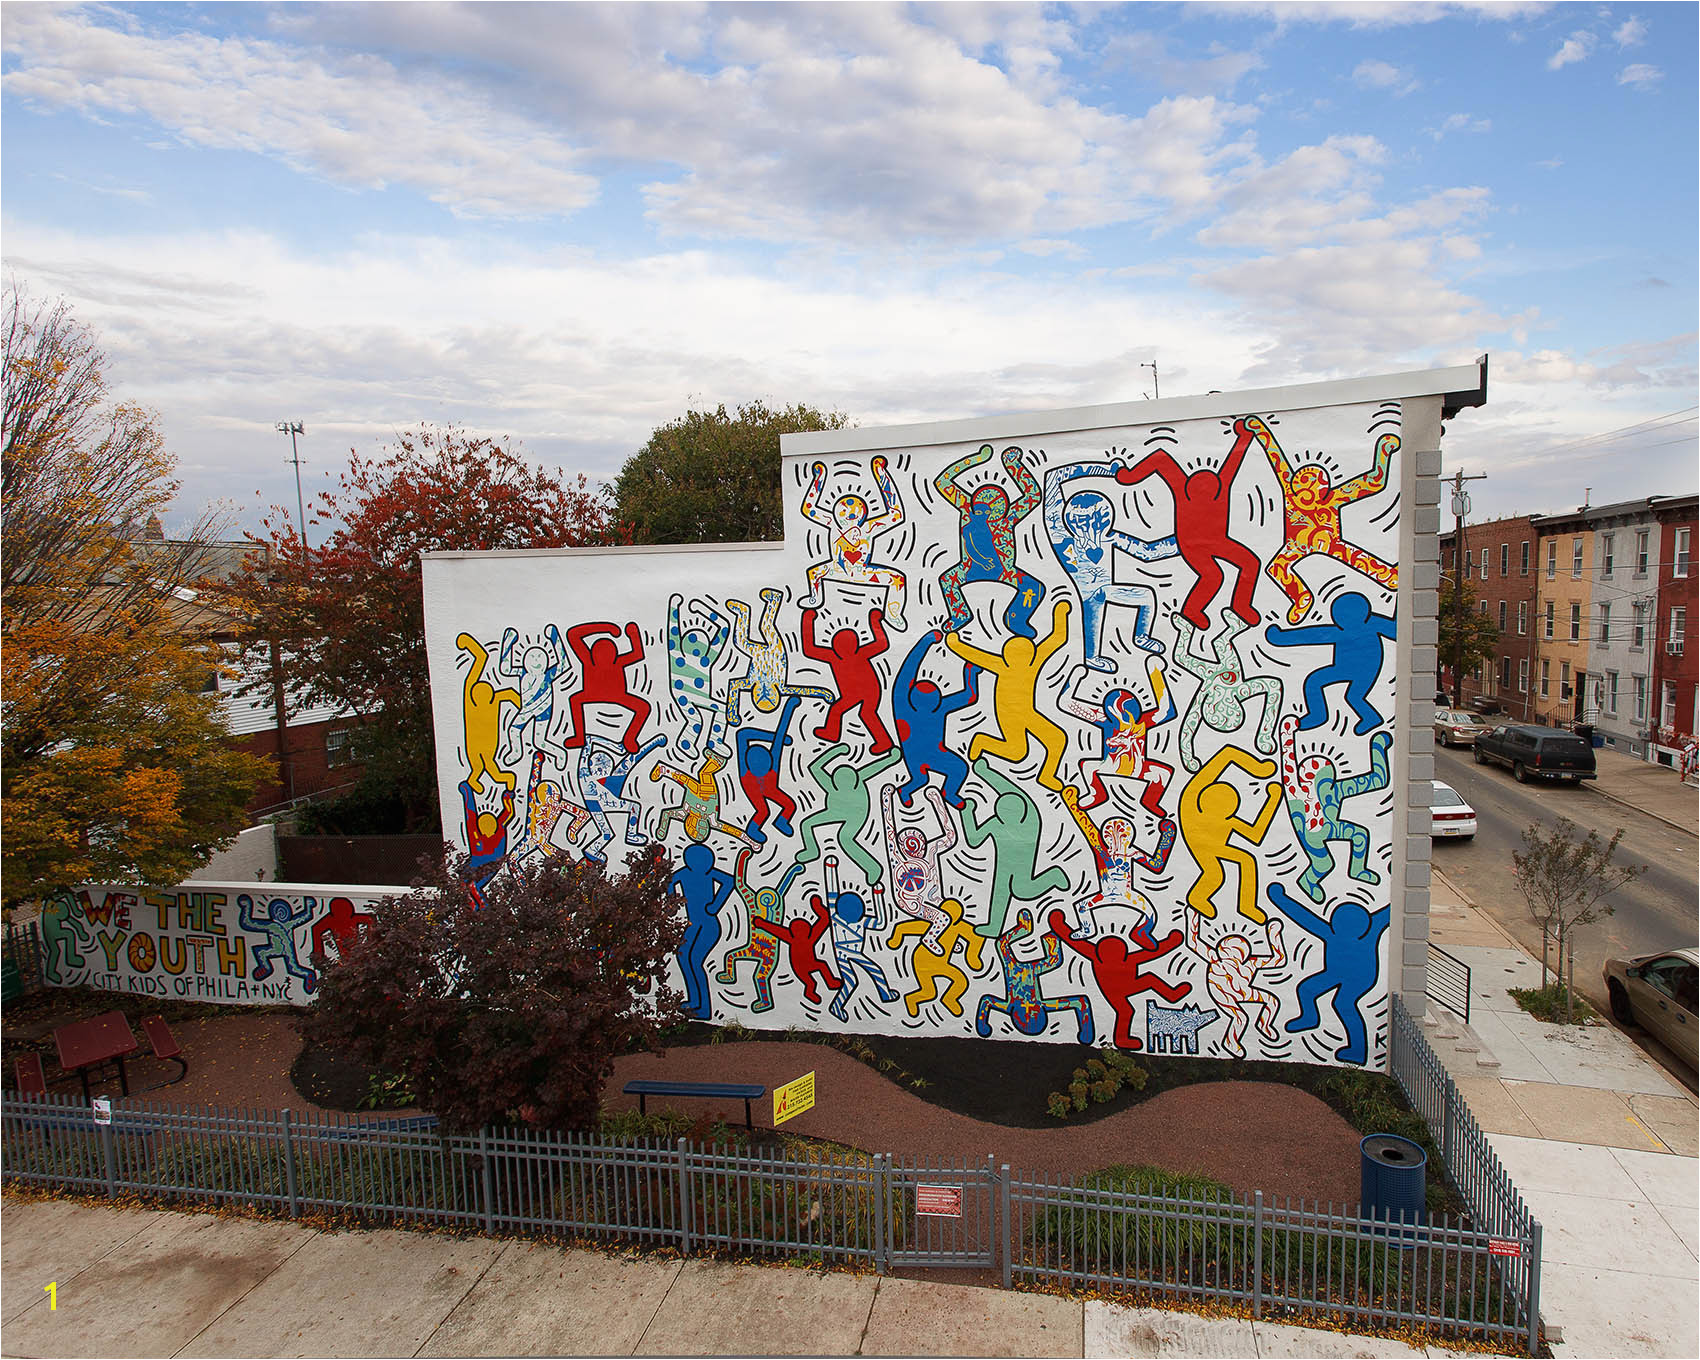 Originally created in 1987 We the Youth is the only Keith Haring collaborative public mural remaining intact and on its original site artist Keith Haring